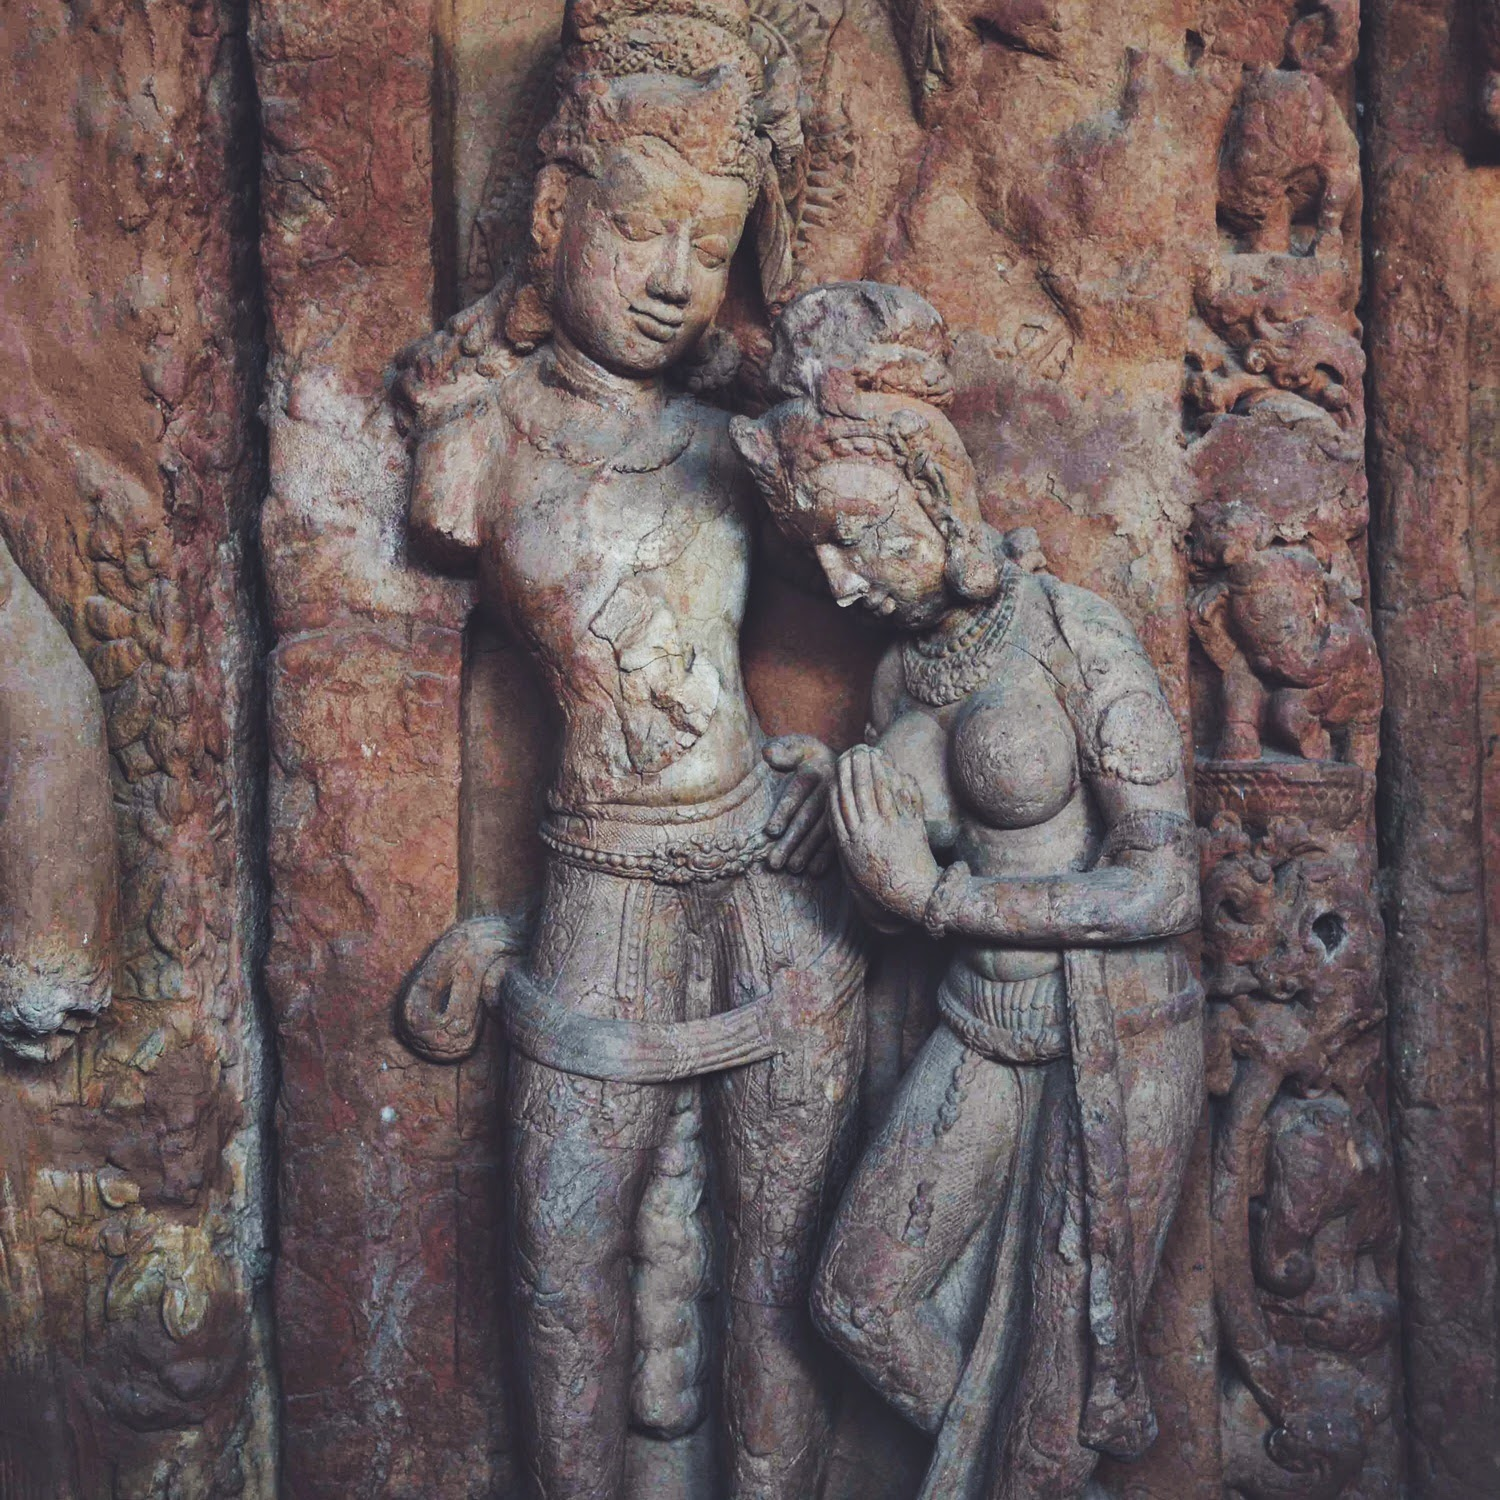 sirpur chhattisgarh budh vihar carvings lovers travel tourism